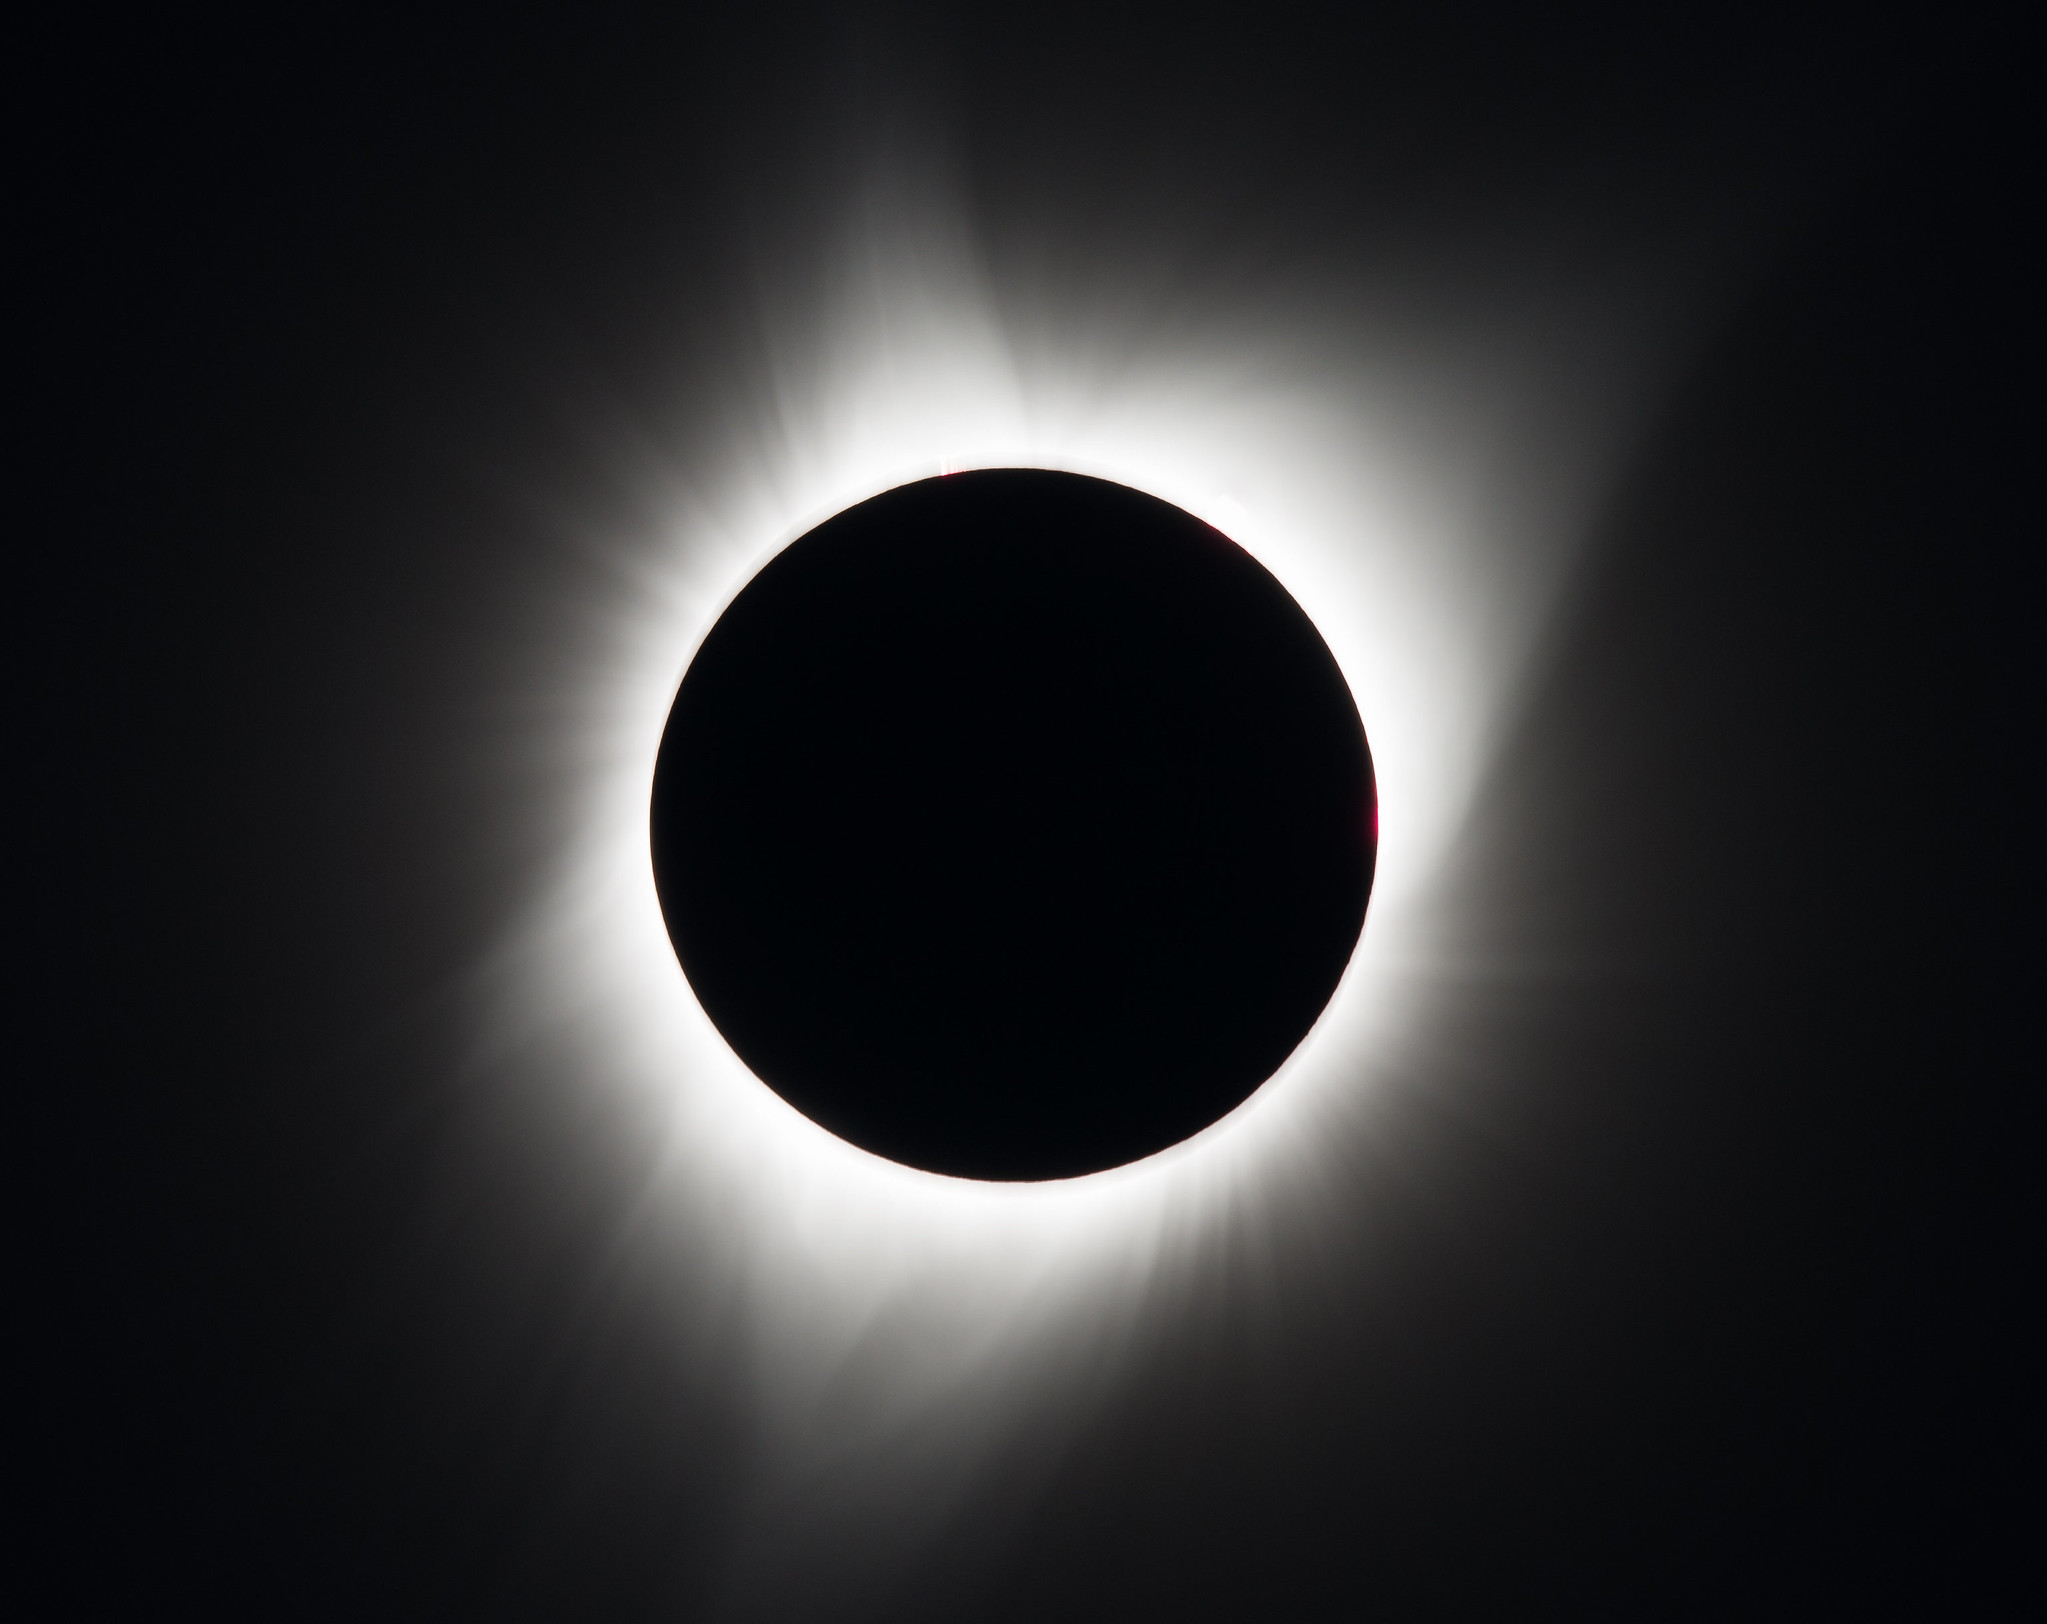 2017 Total Solar Eclipse (NHQ201708210100)